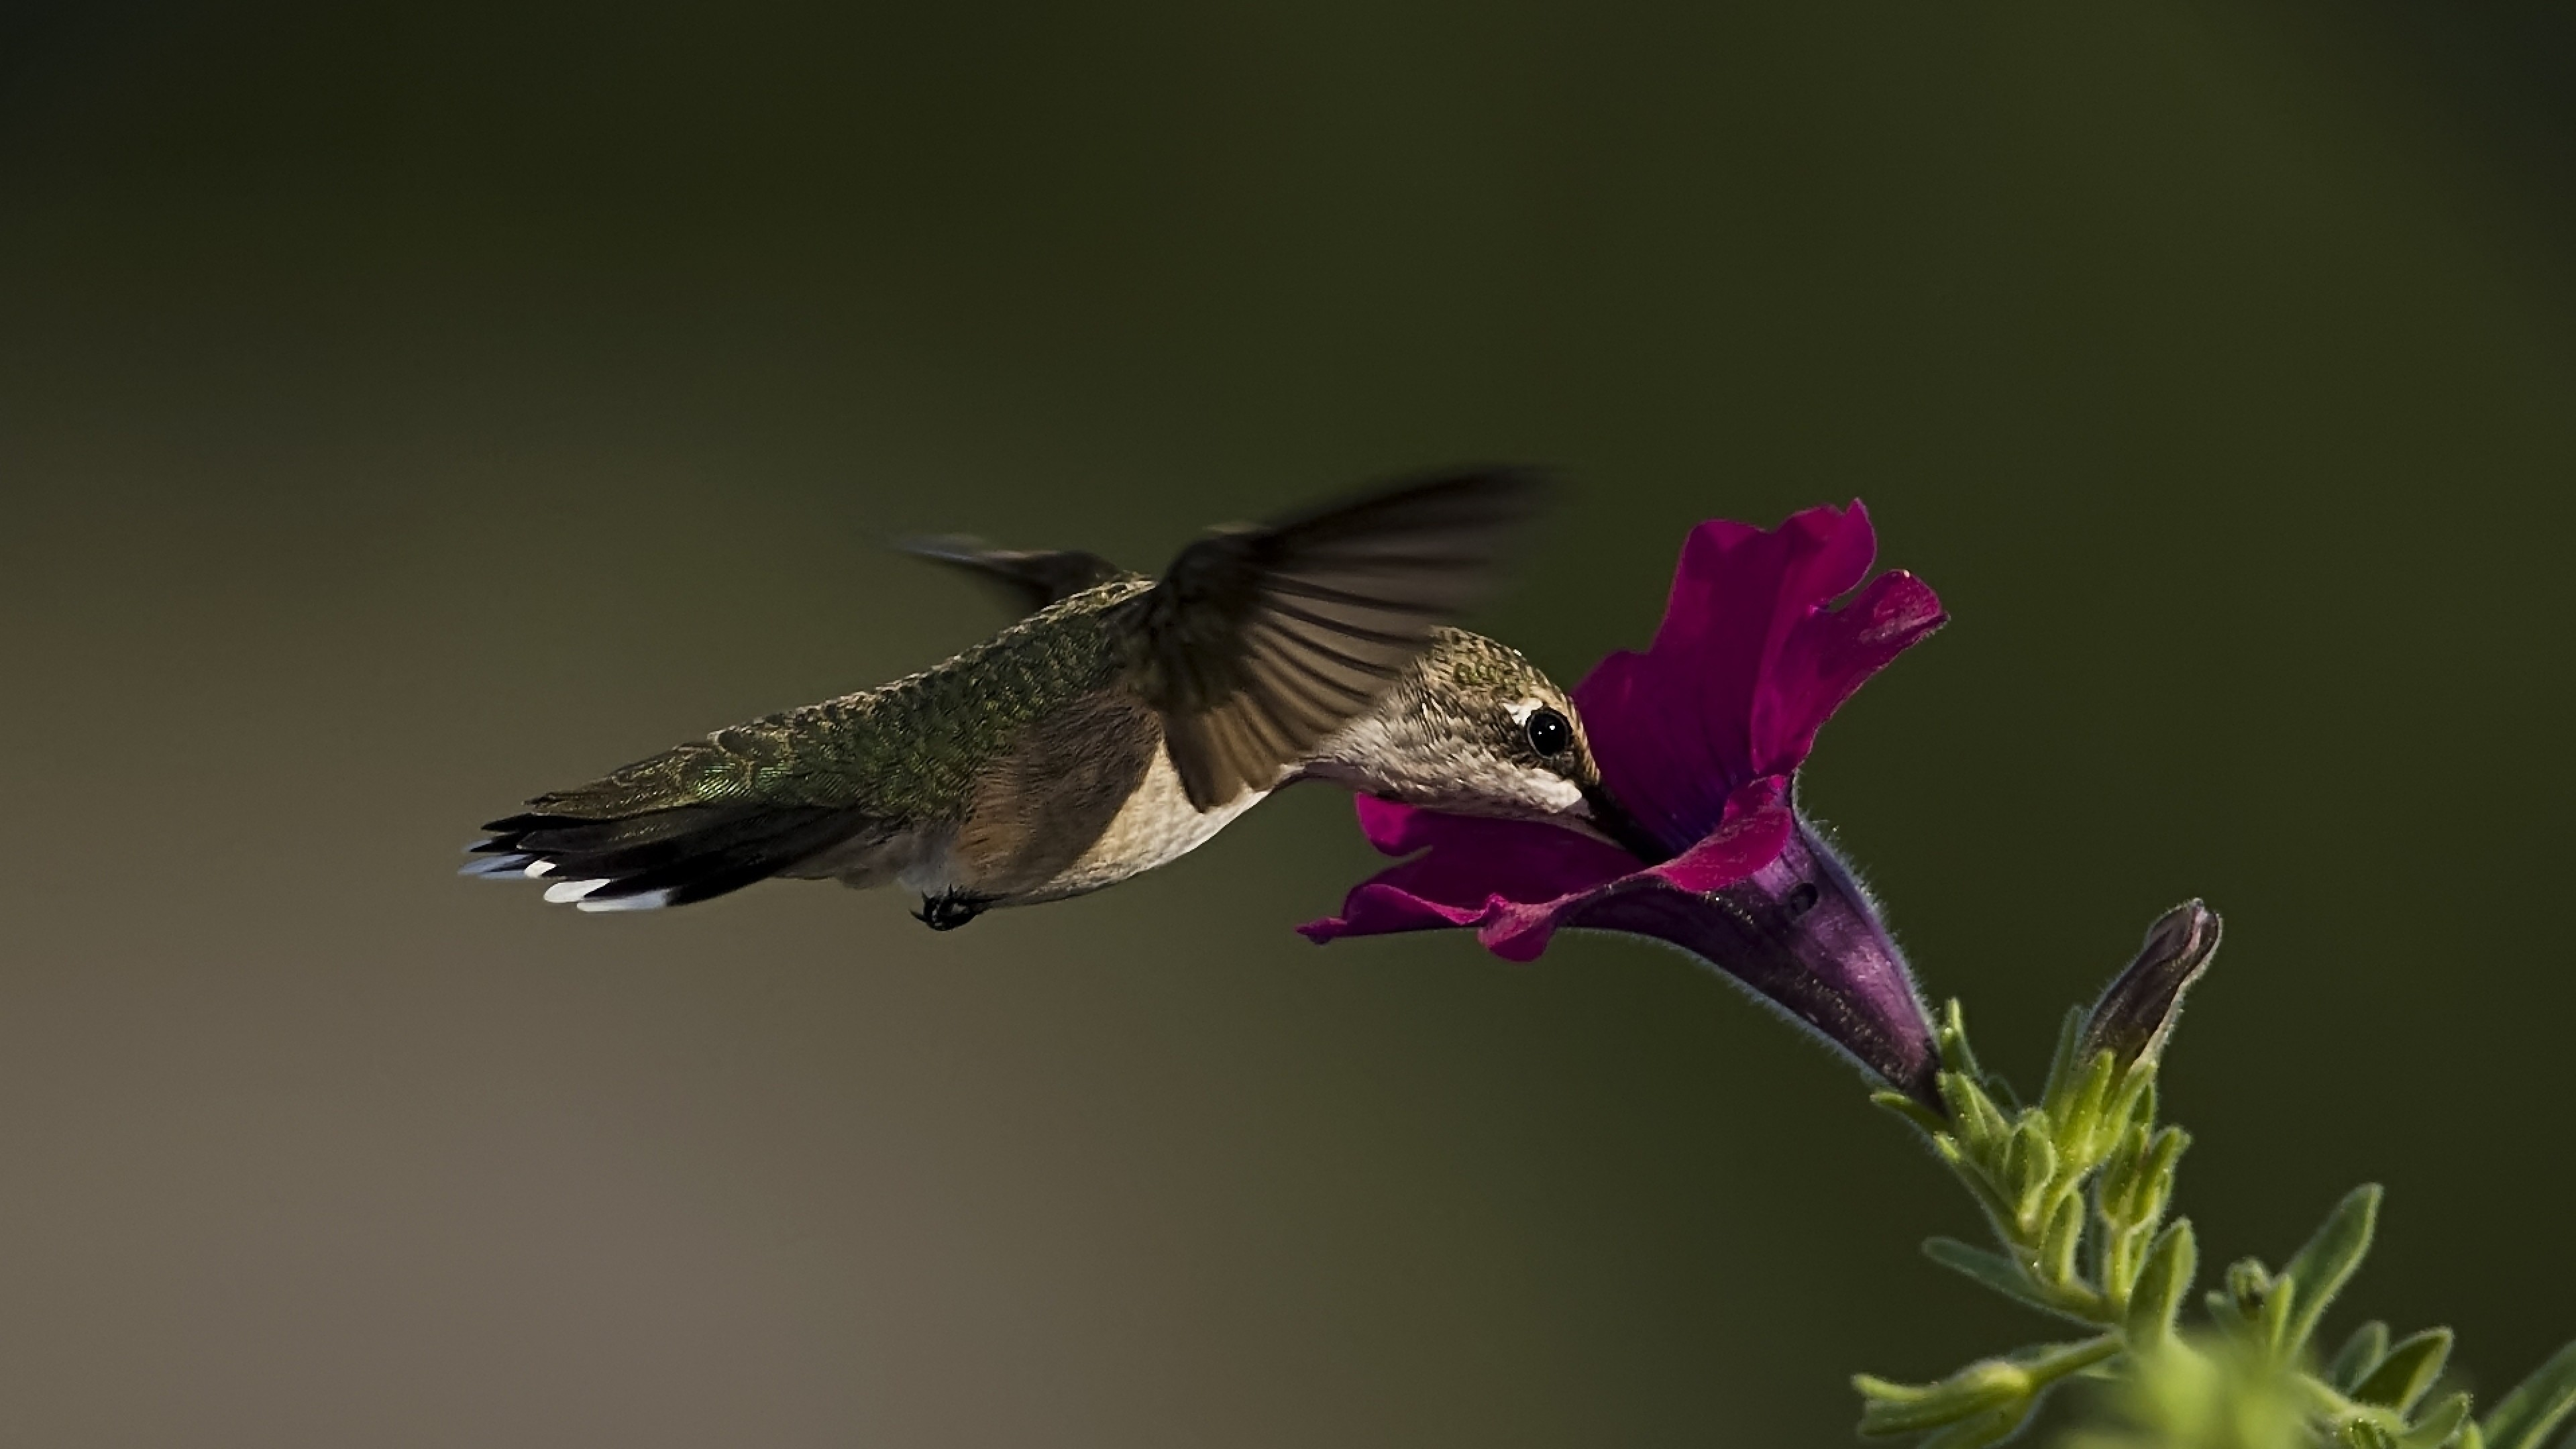 Wallpaper Birds And Flowers 61 Images